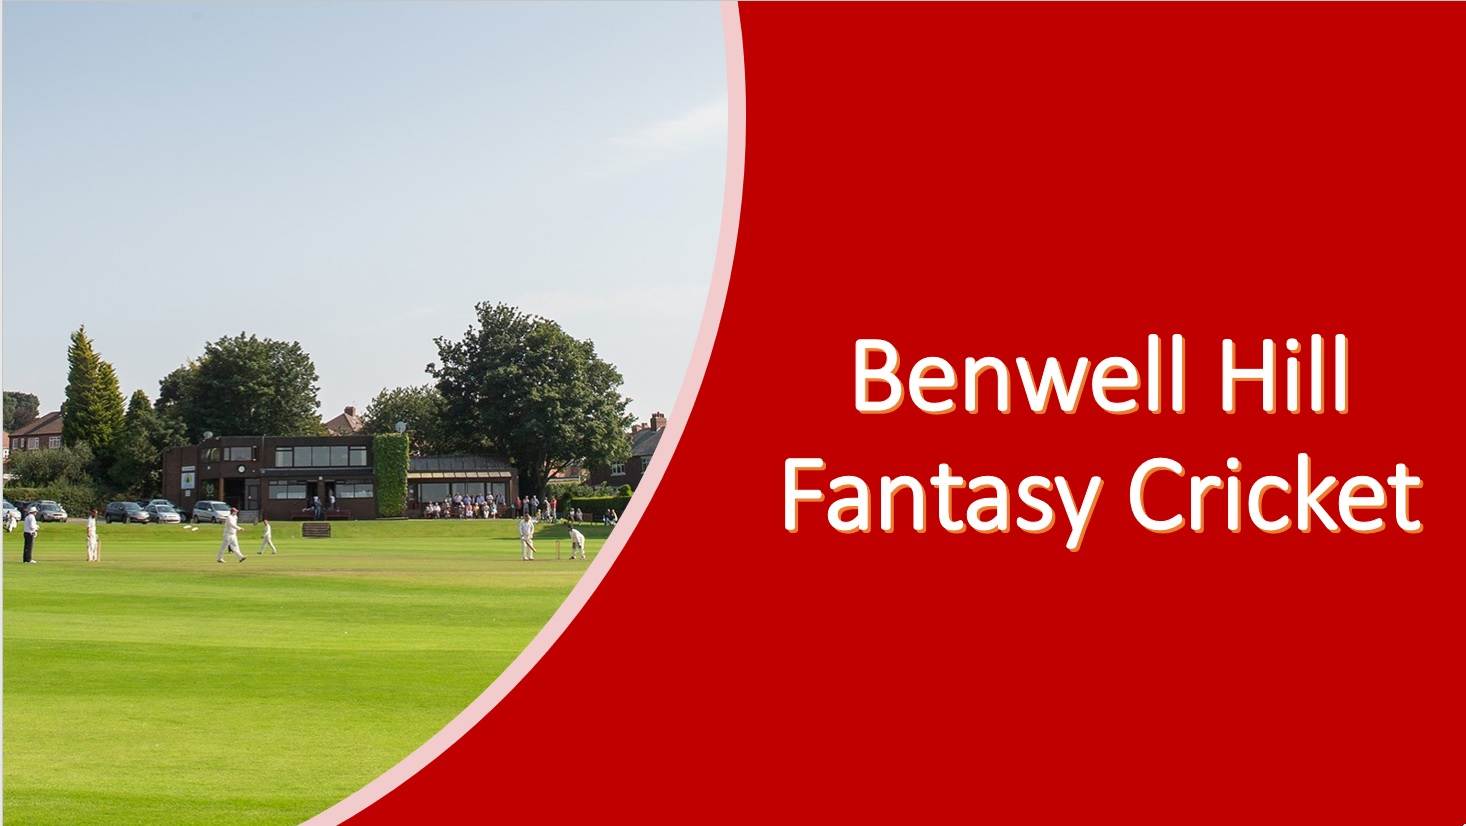 Benwell Hill Fantasy Cricket - Latest standings